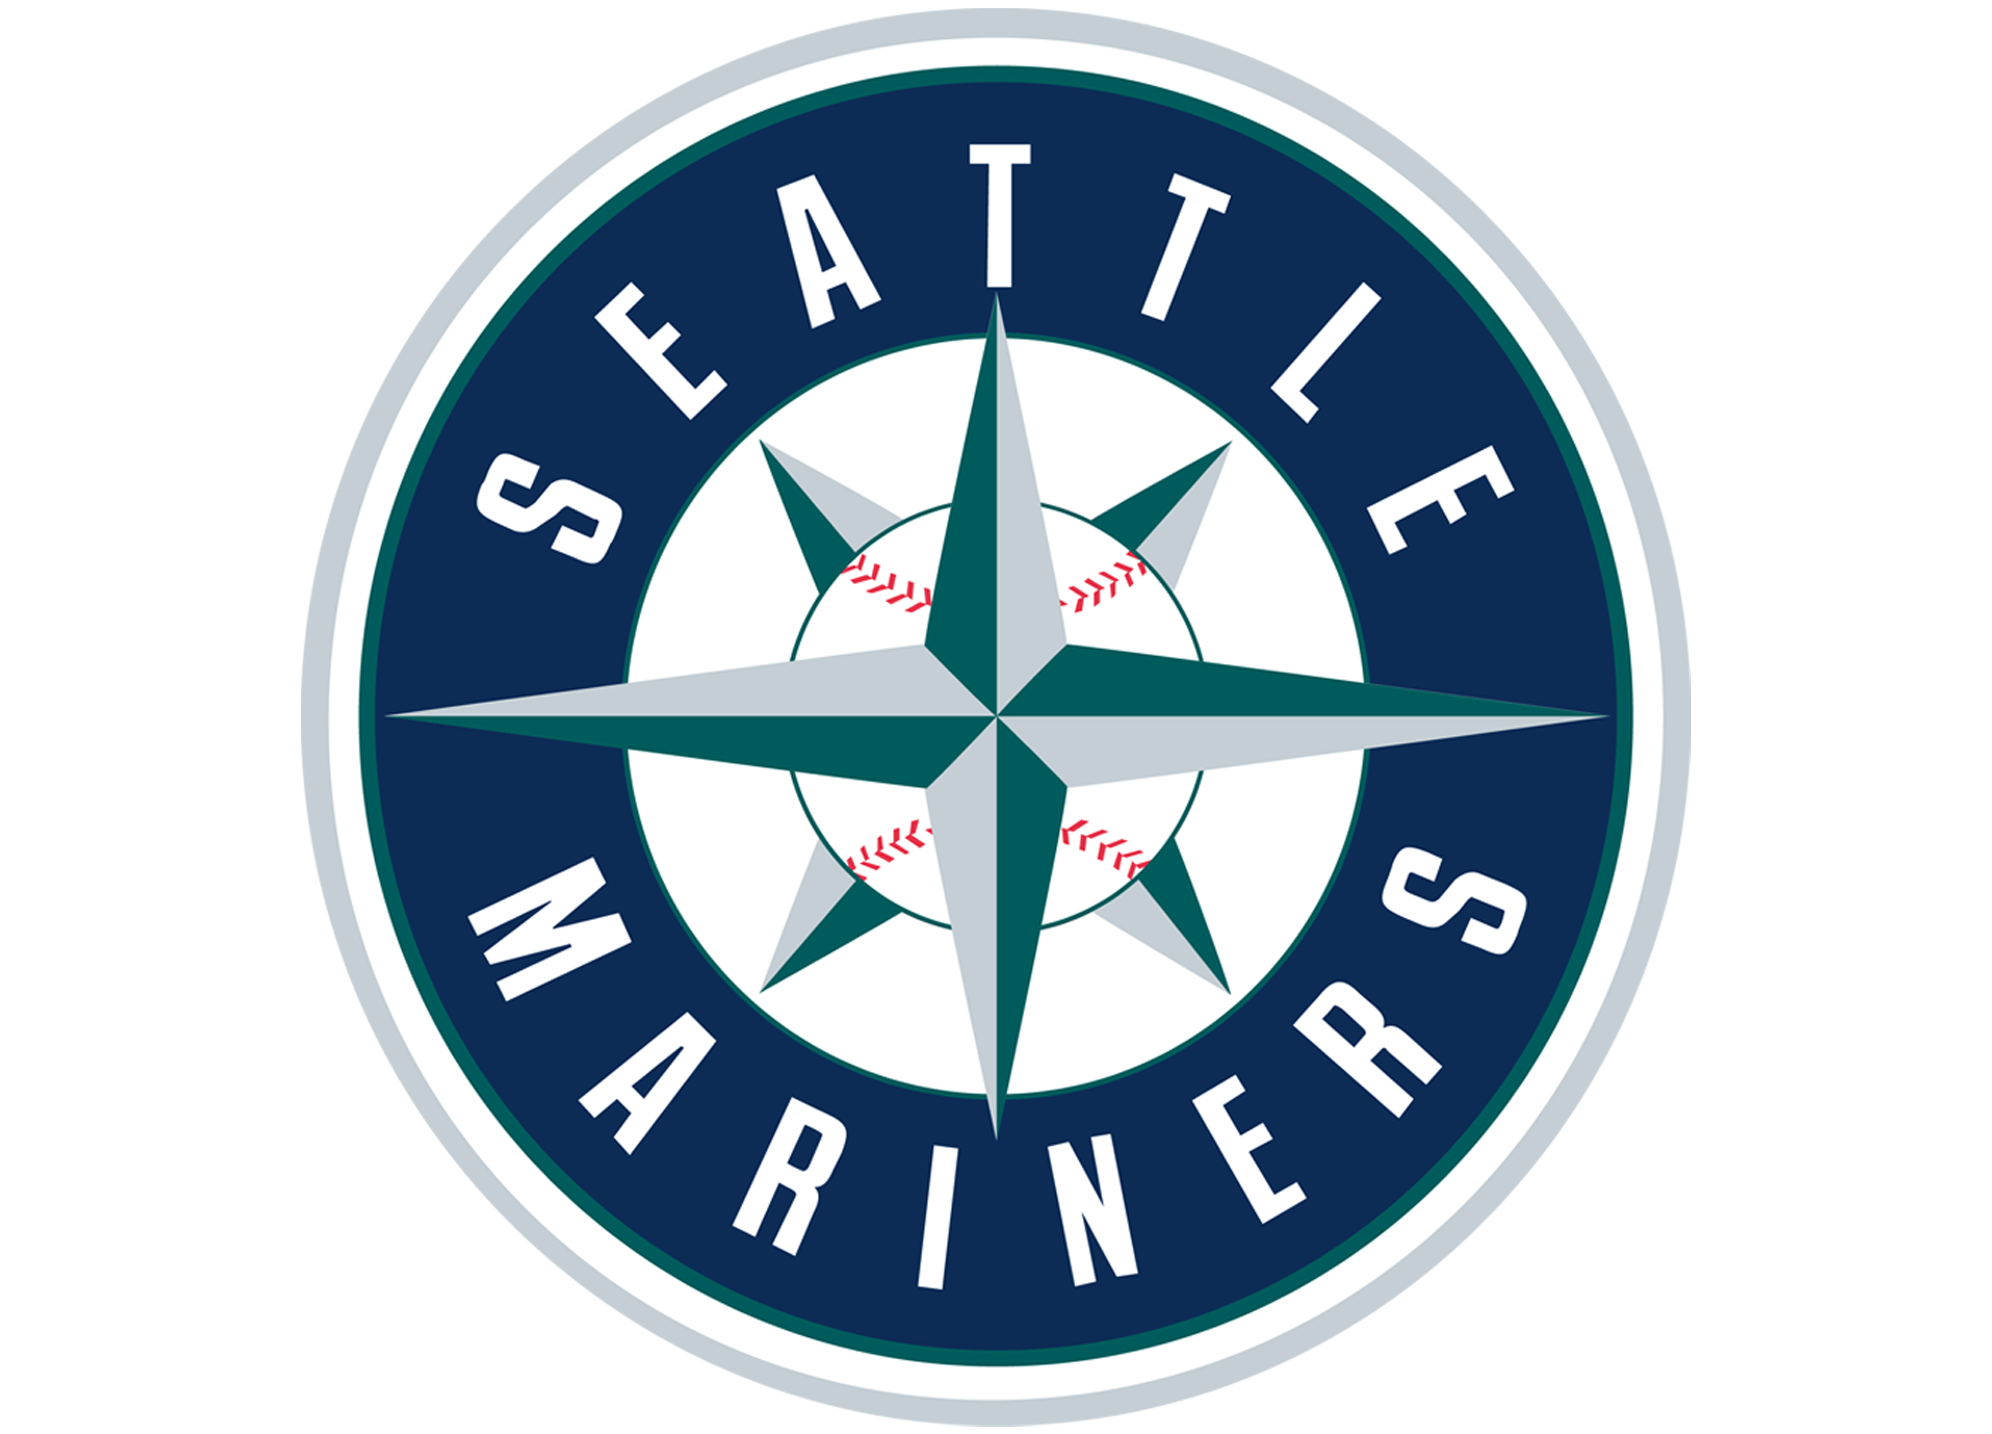 Seattle Mariners - Free Sports Logo Vector Downloads